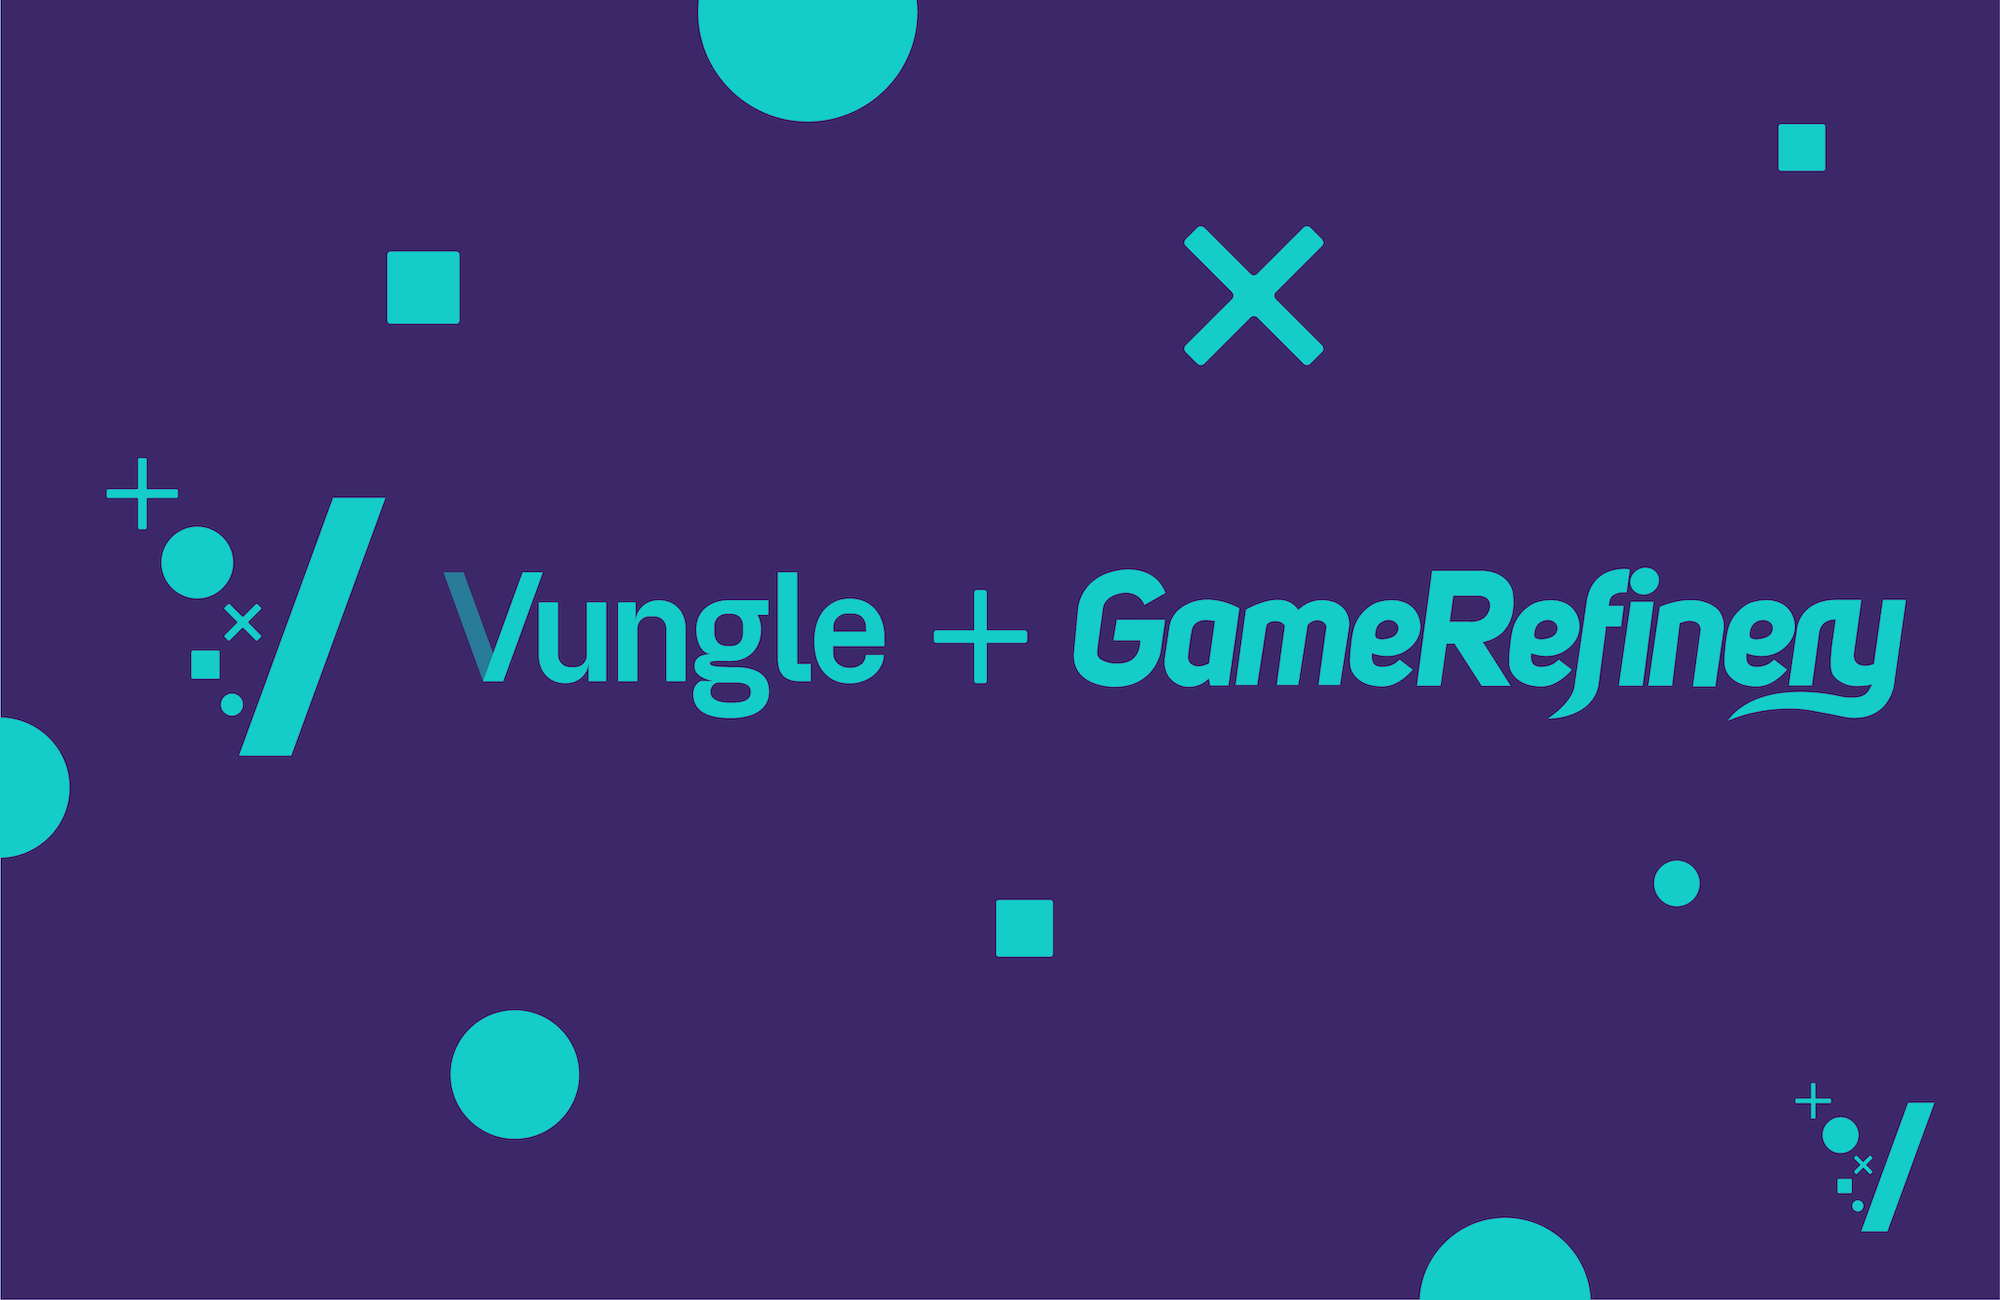 Vungle Acquires GameRefinery, a Leading SaaS Mobile Gaming Analytics Company